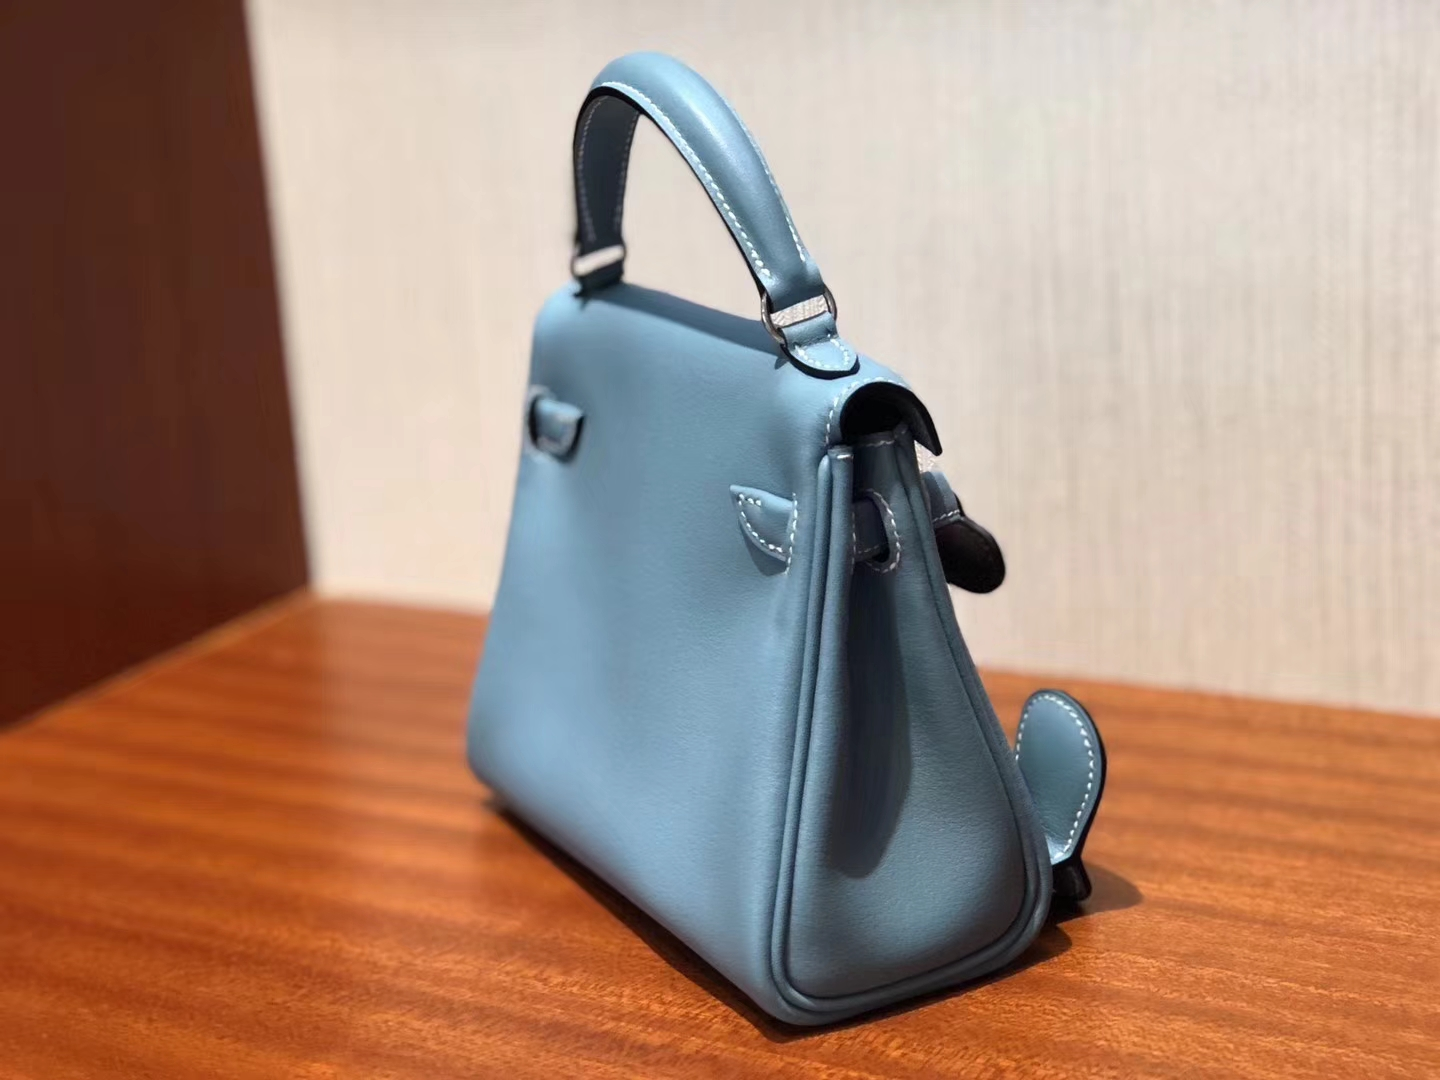 Lovely Hermes Calf Leather Kell Doll Tote Bag in Blue Jean Silver Hardware